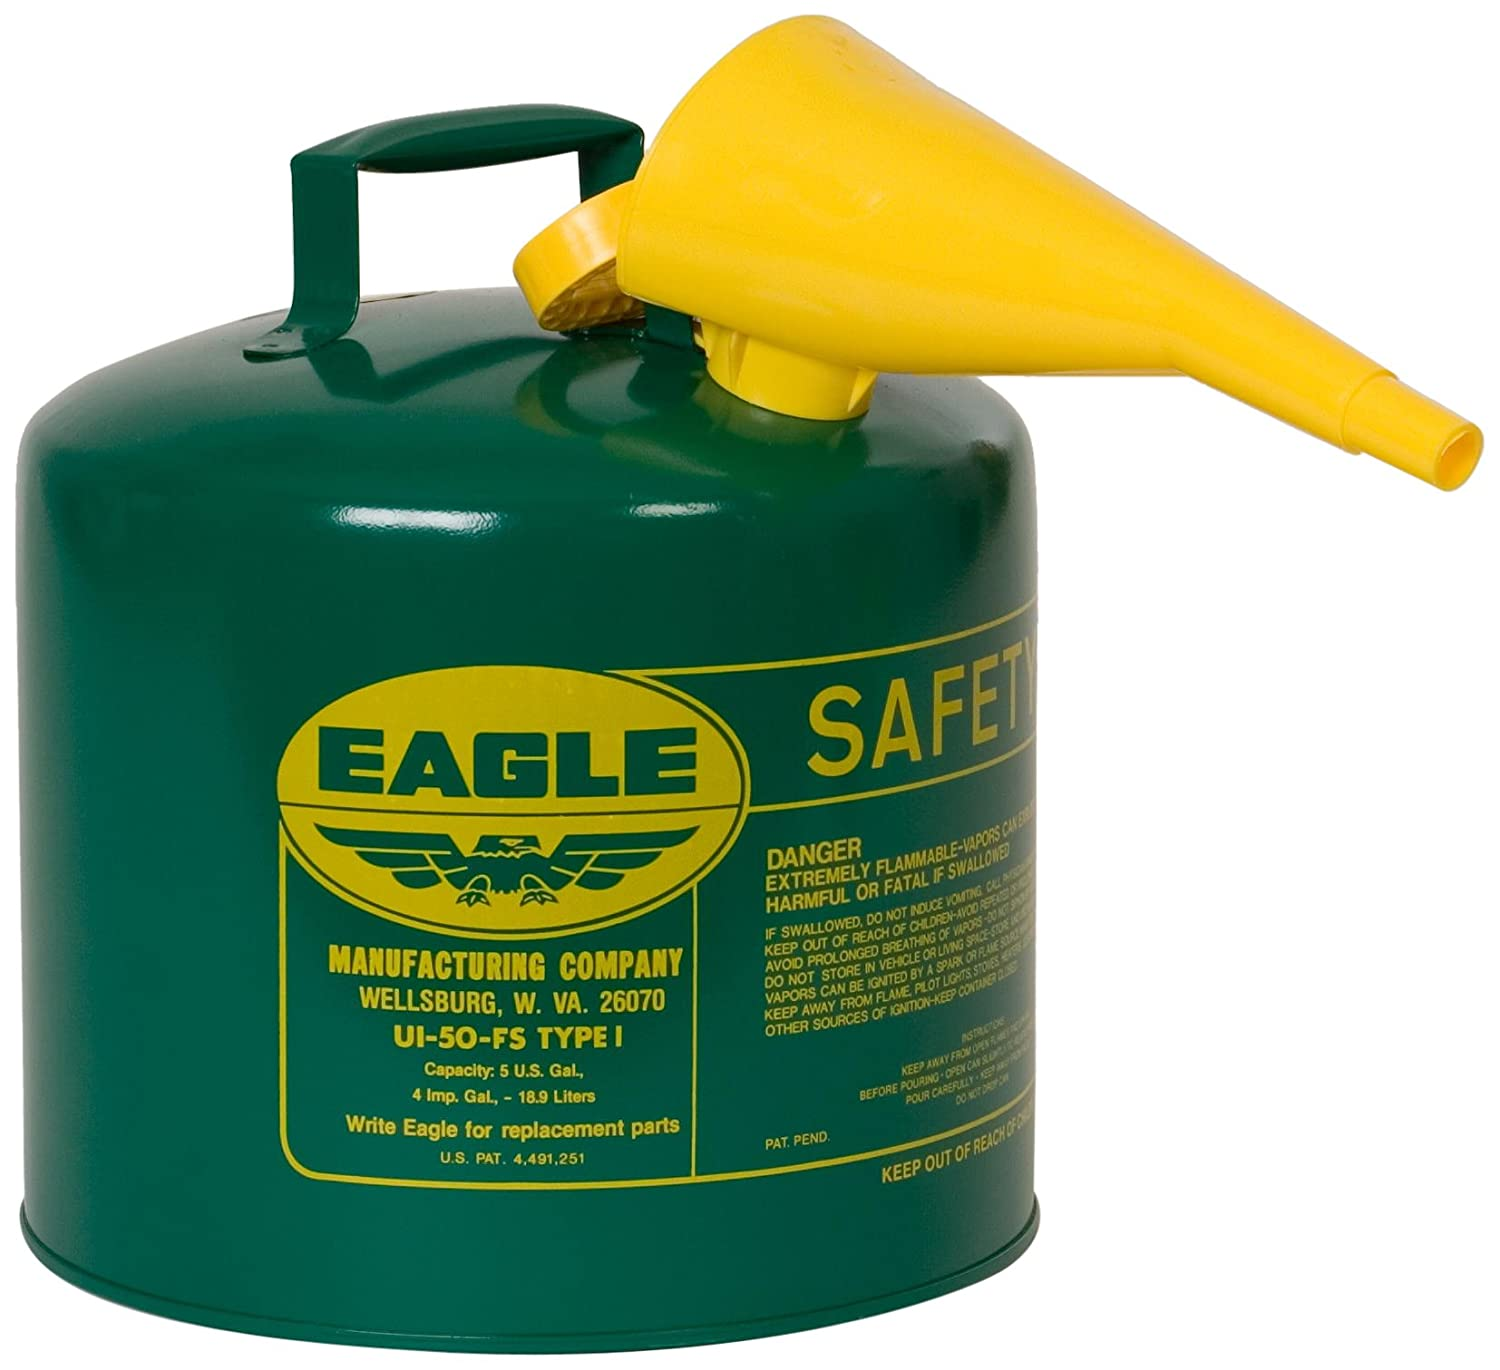 Eagle Free shipping / New UI-50-FSG Type I Metal Safety Funnel Combus with Clearance SALE Limited time F-15 Can